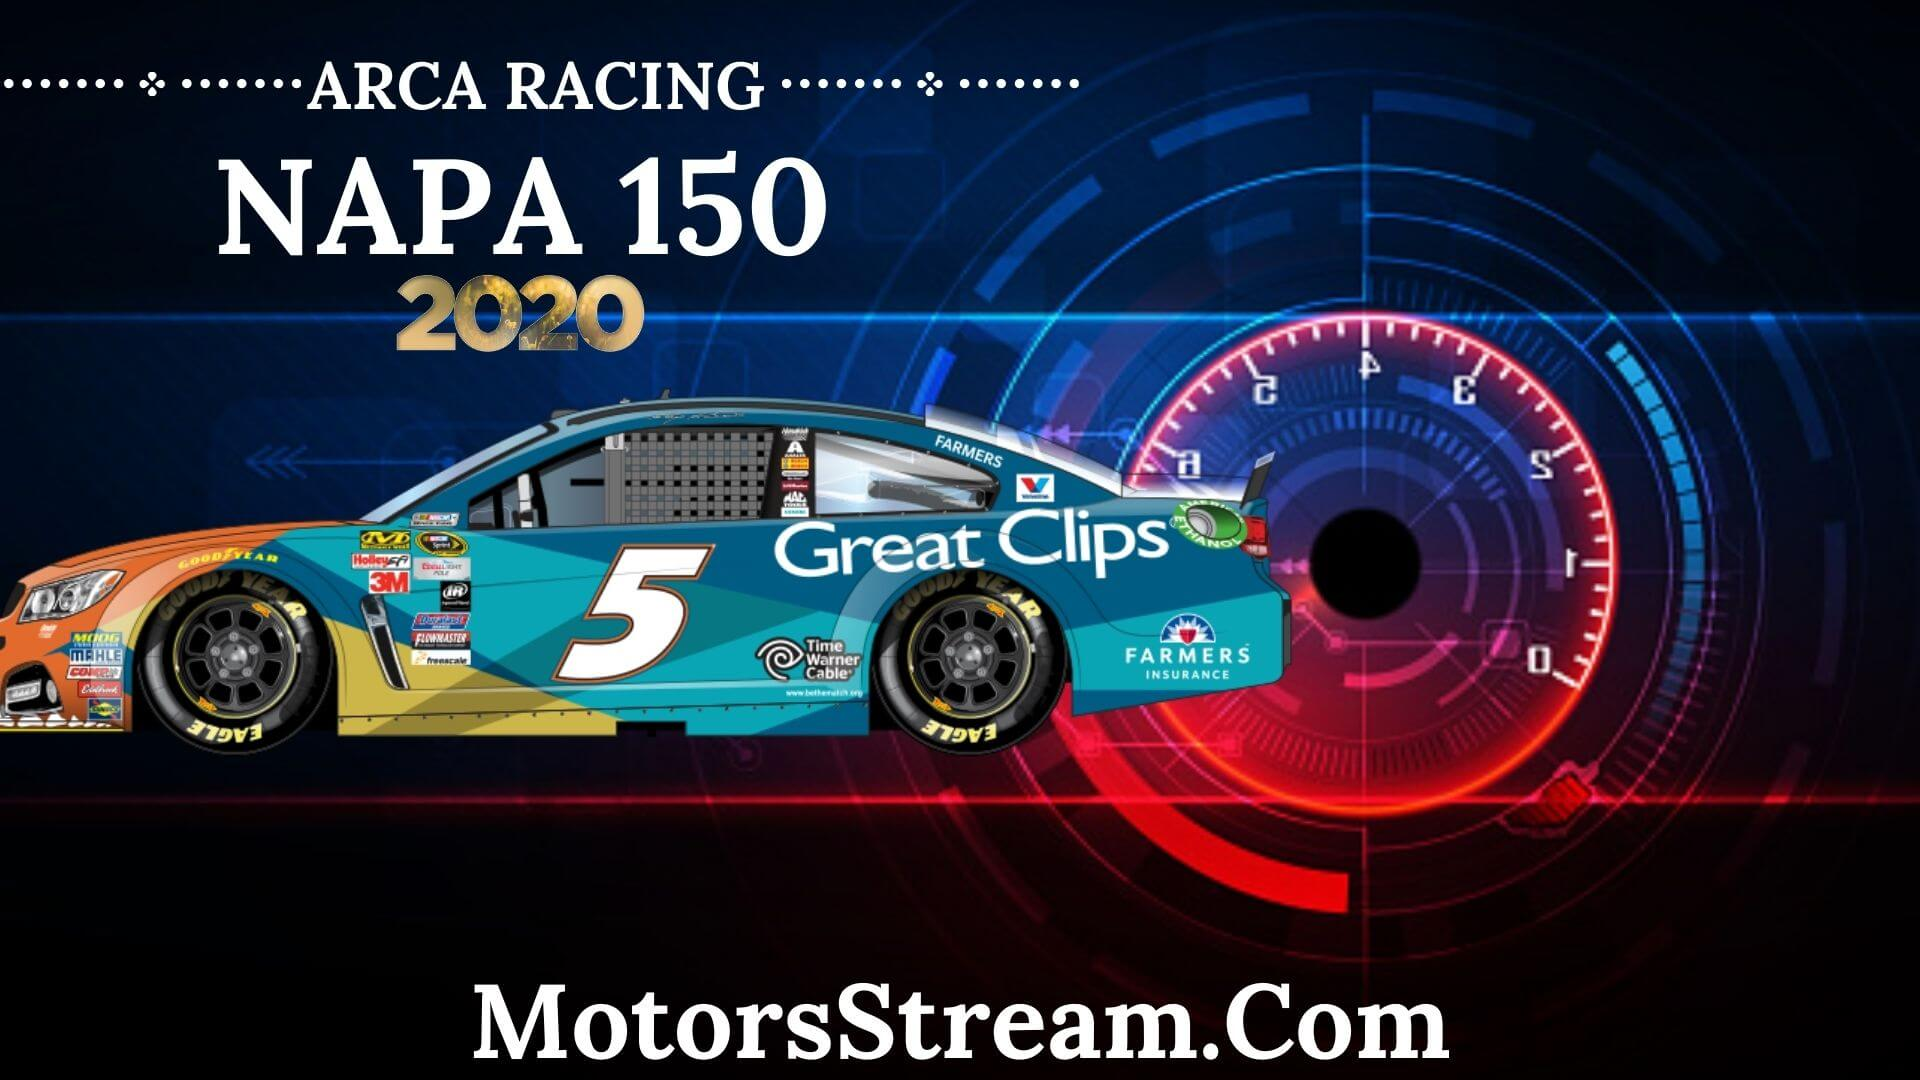 Napa Auto Parts 125 Live Stream 2020 Arca Racing